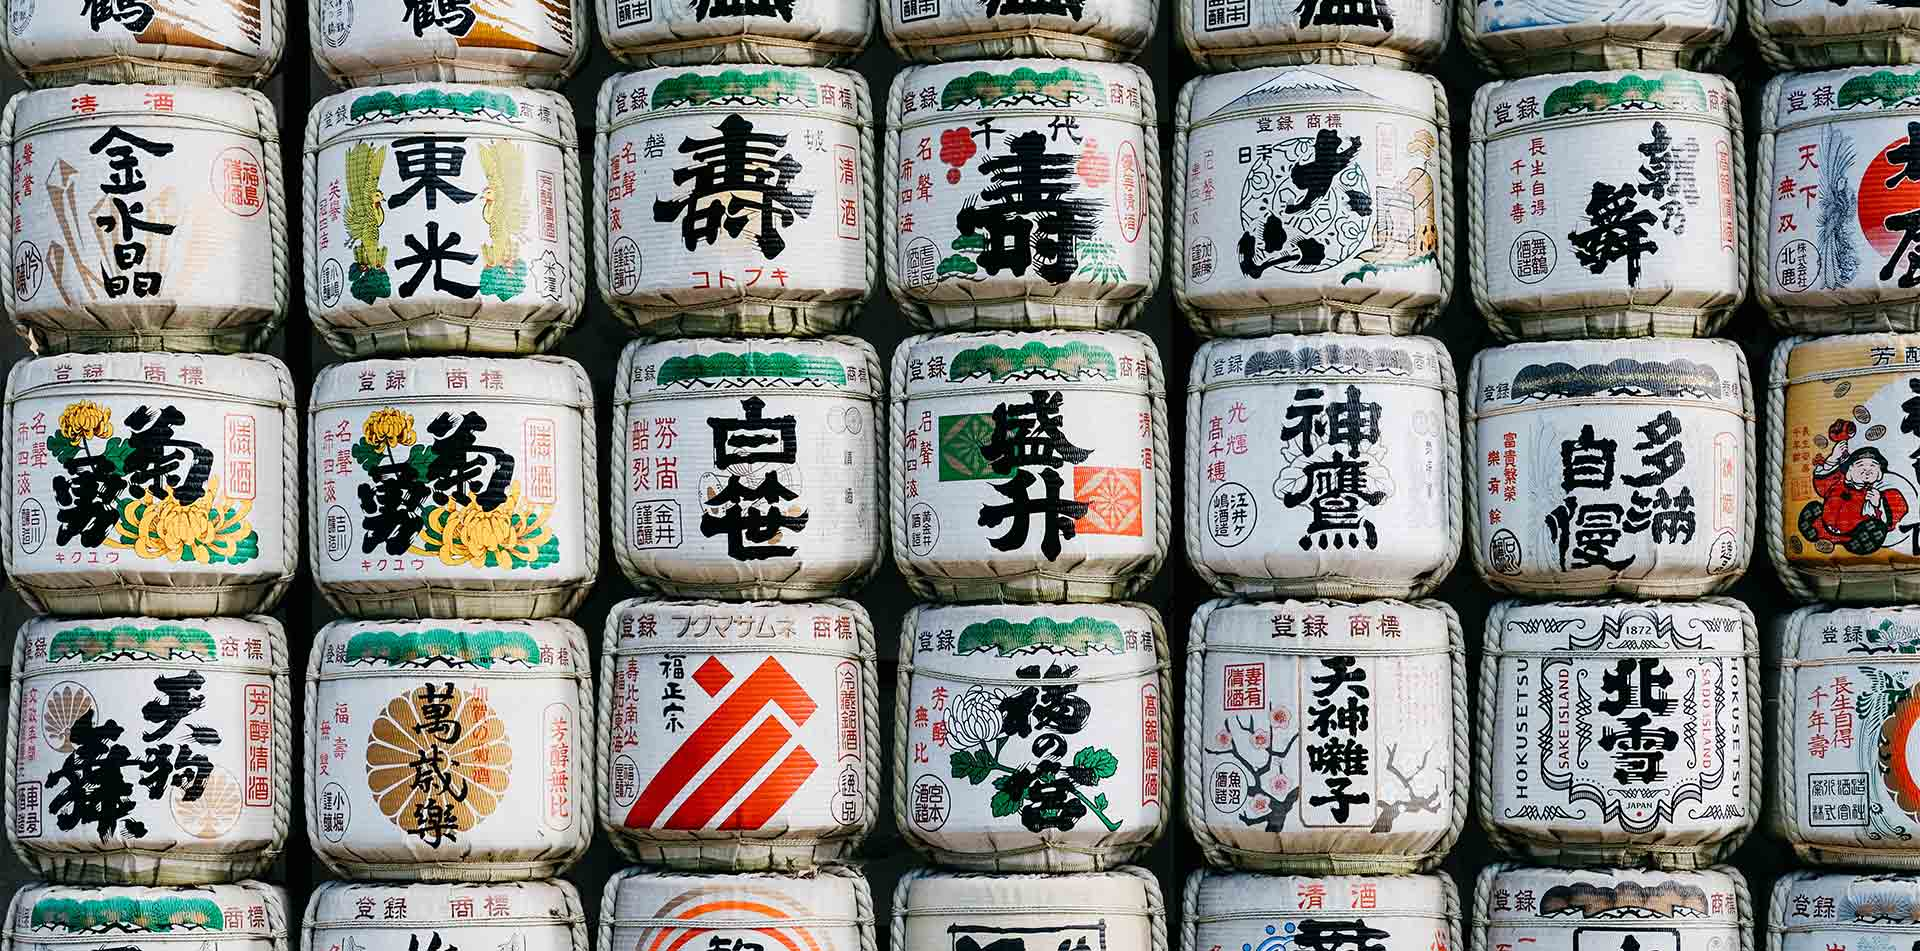 Asia Japan Tokyo Shibuya Meiji Jingu shrine lanterns - luxury vacation destinations